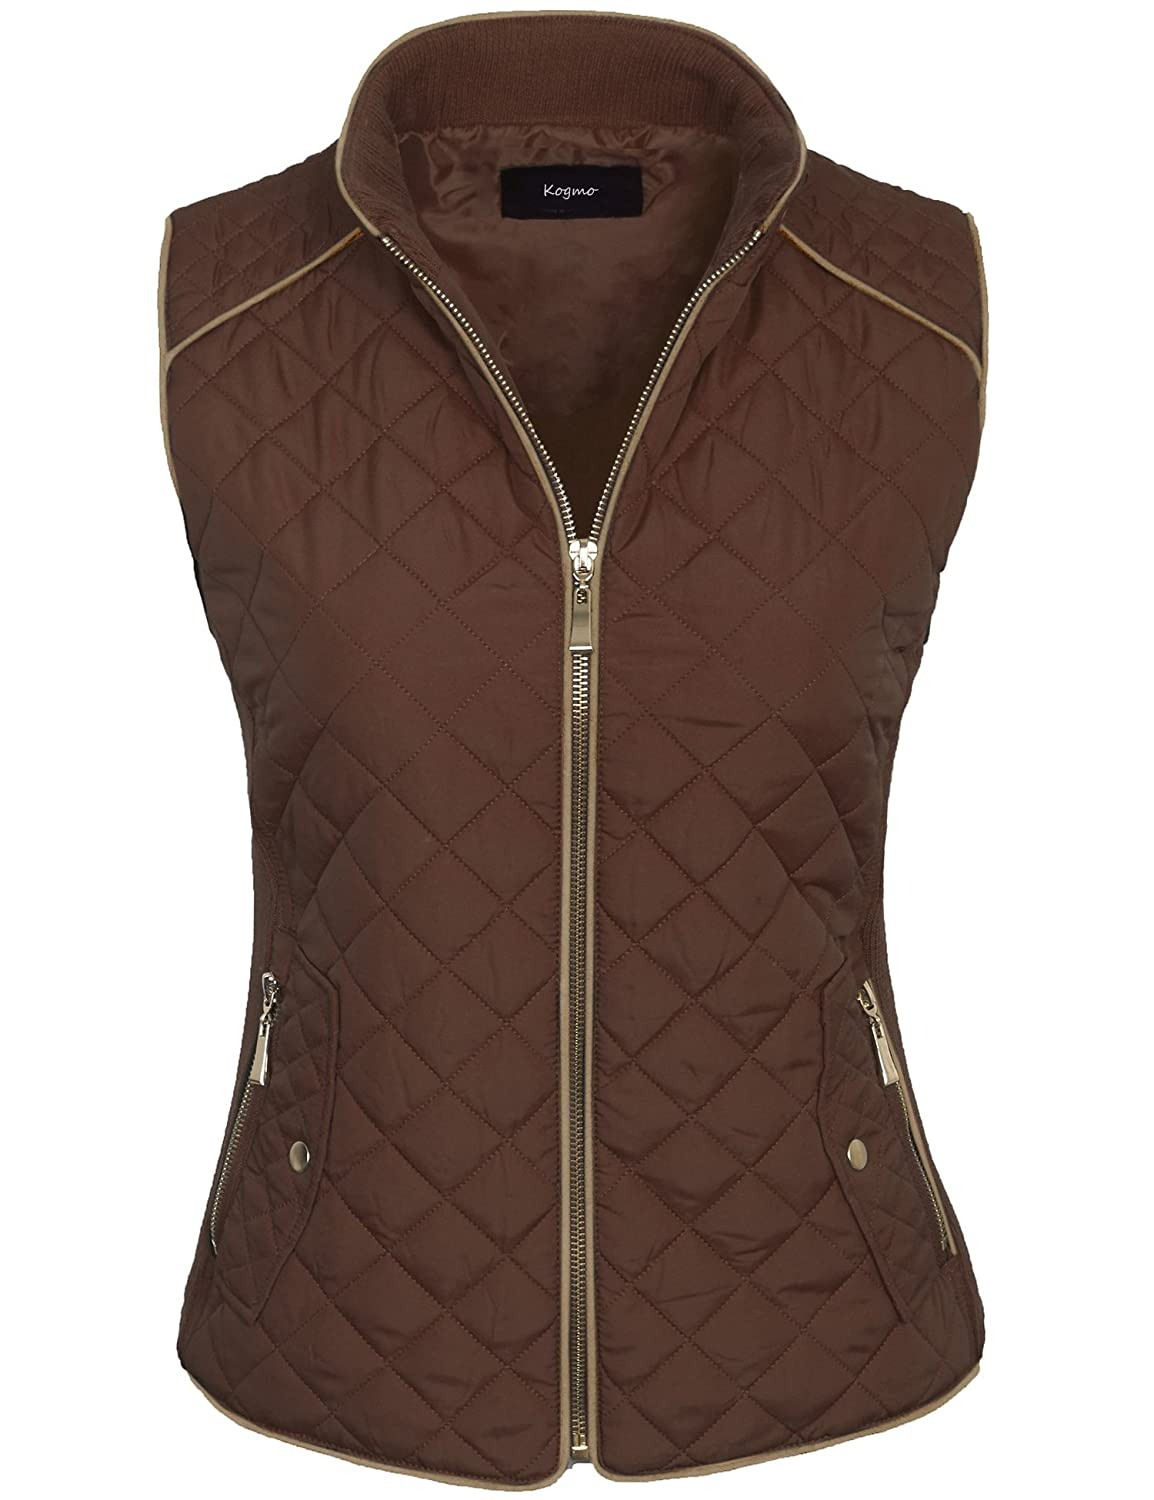 f8aa414aef6 KOGMO Womens Quilted Fully Lined Lightweight Zip up Vest S-3X at Amazon  Women s Clothing store